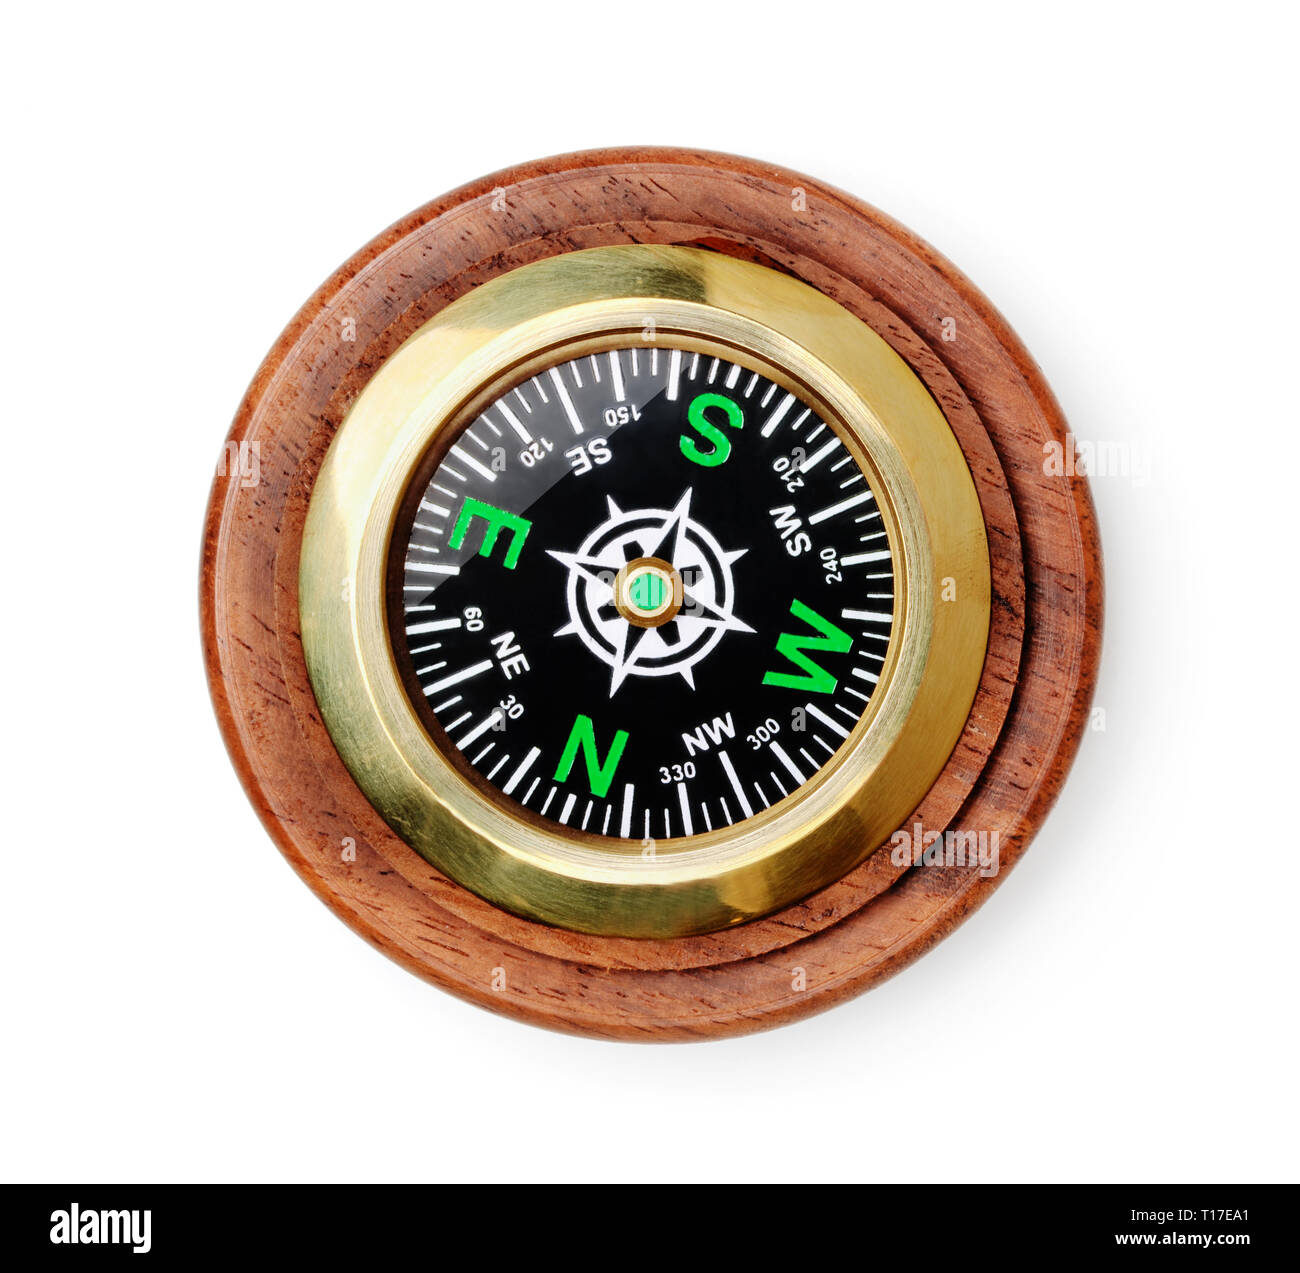 Old style wooden compass top view isolated on white - Stock Image